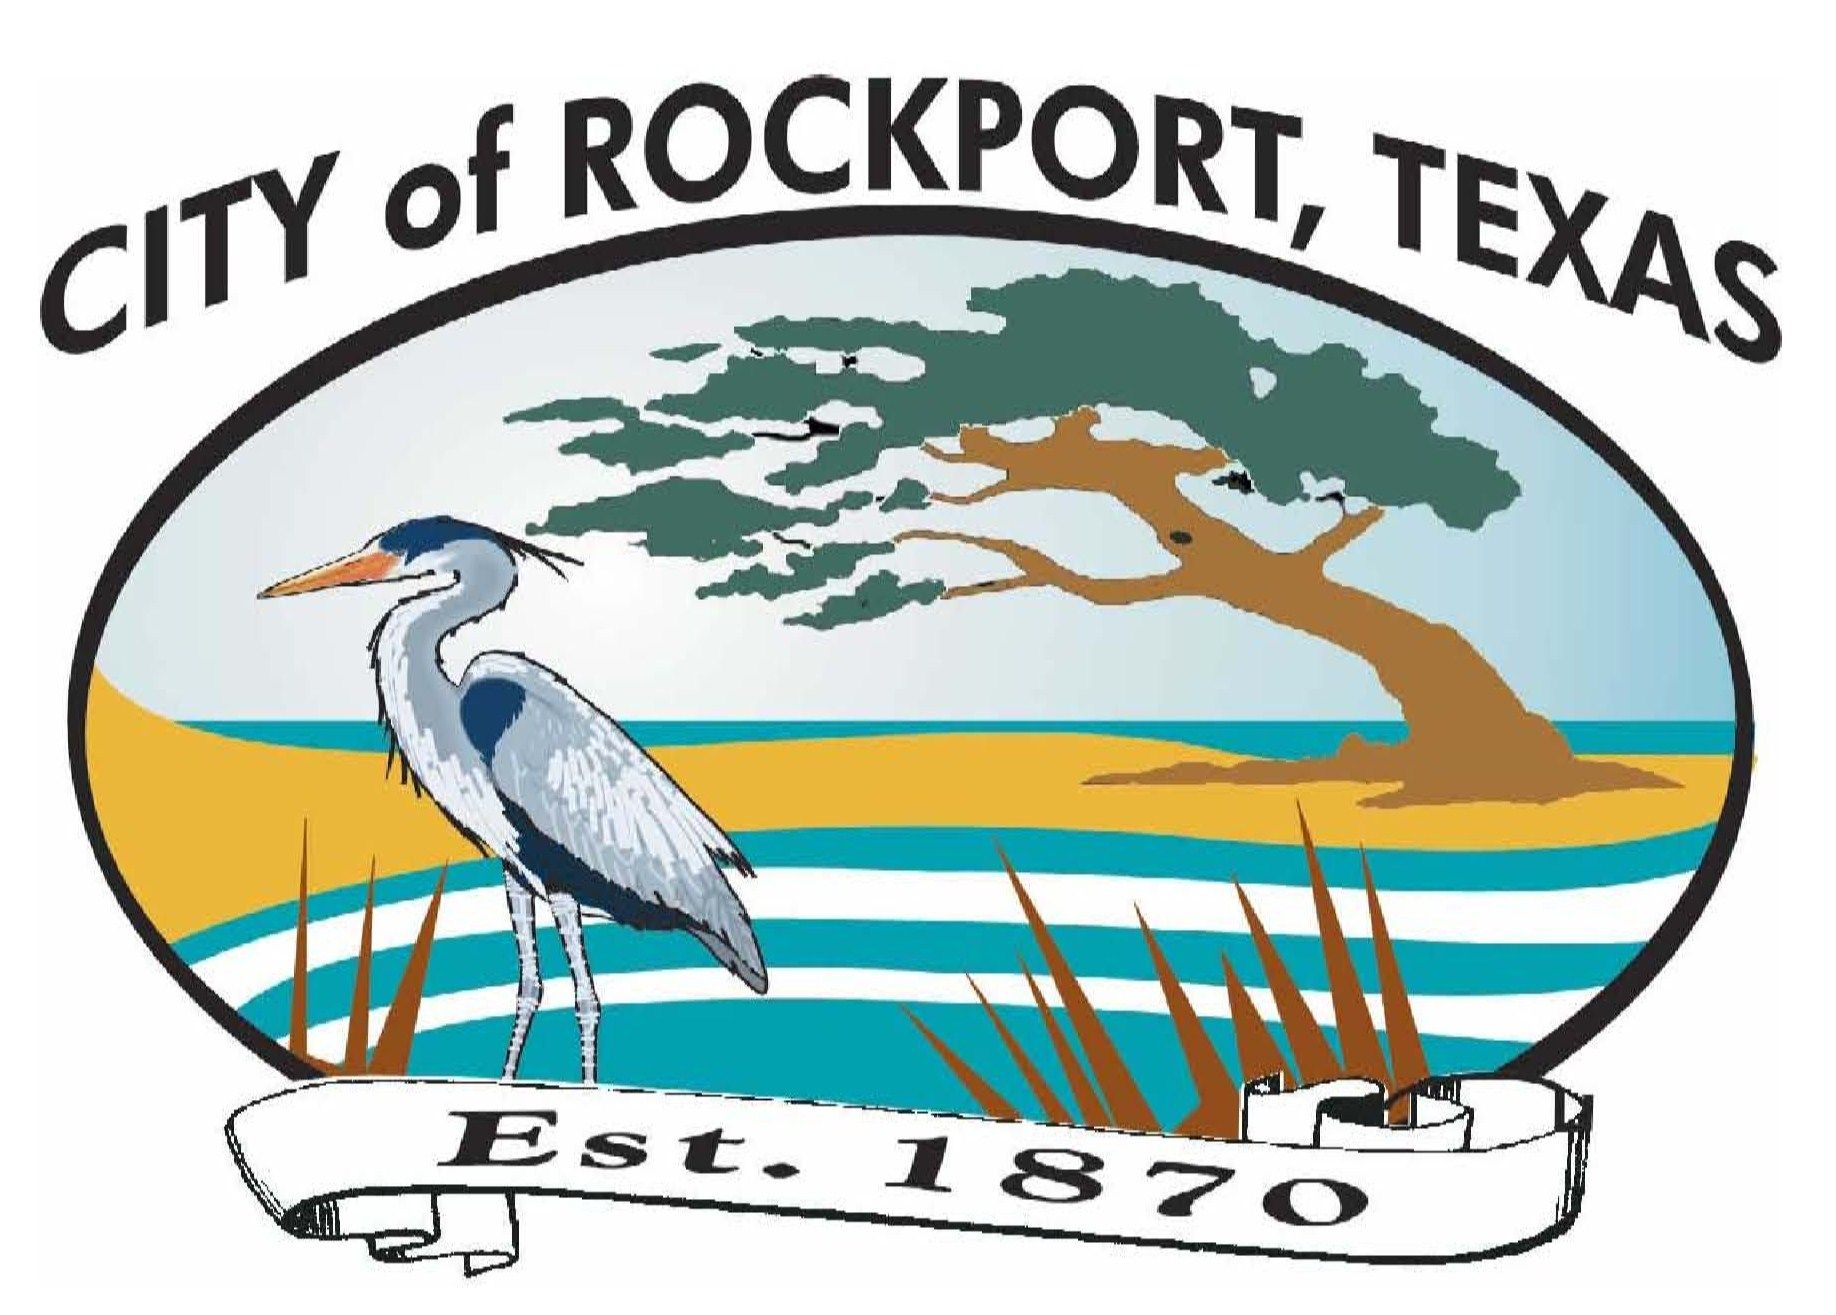 City of Rockport Texas